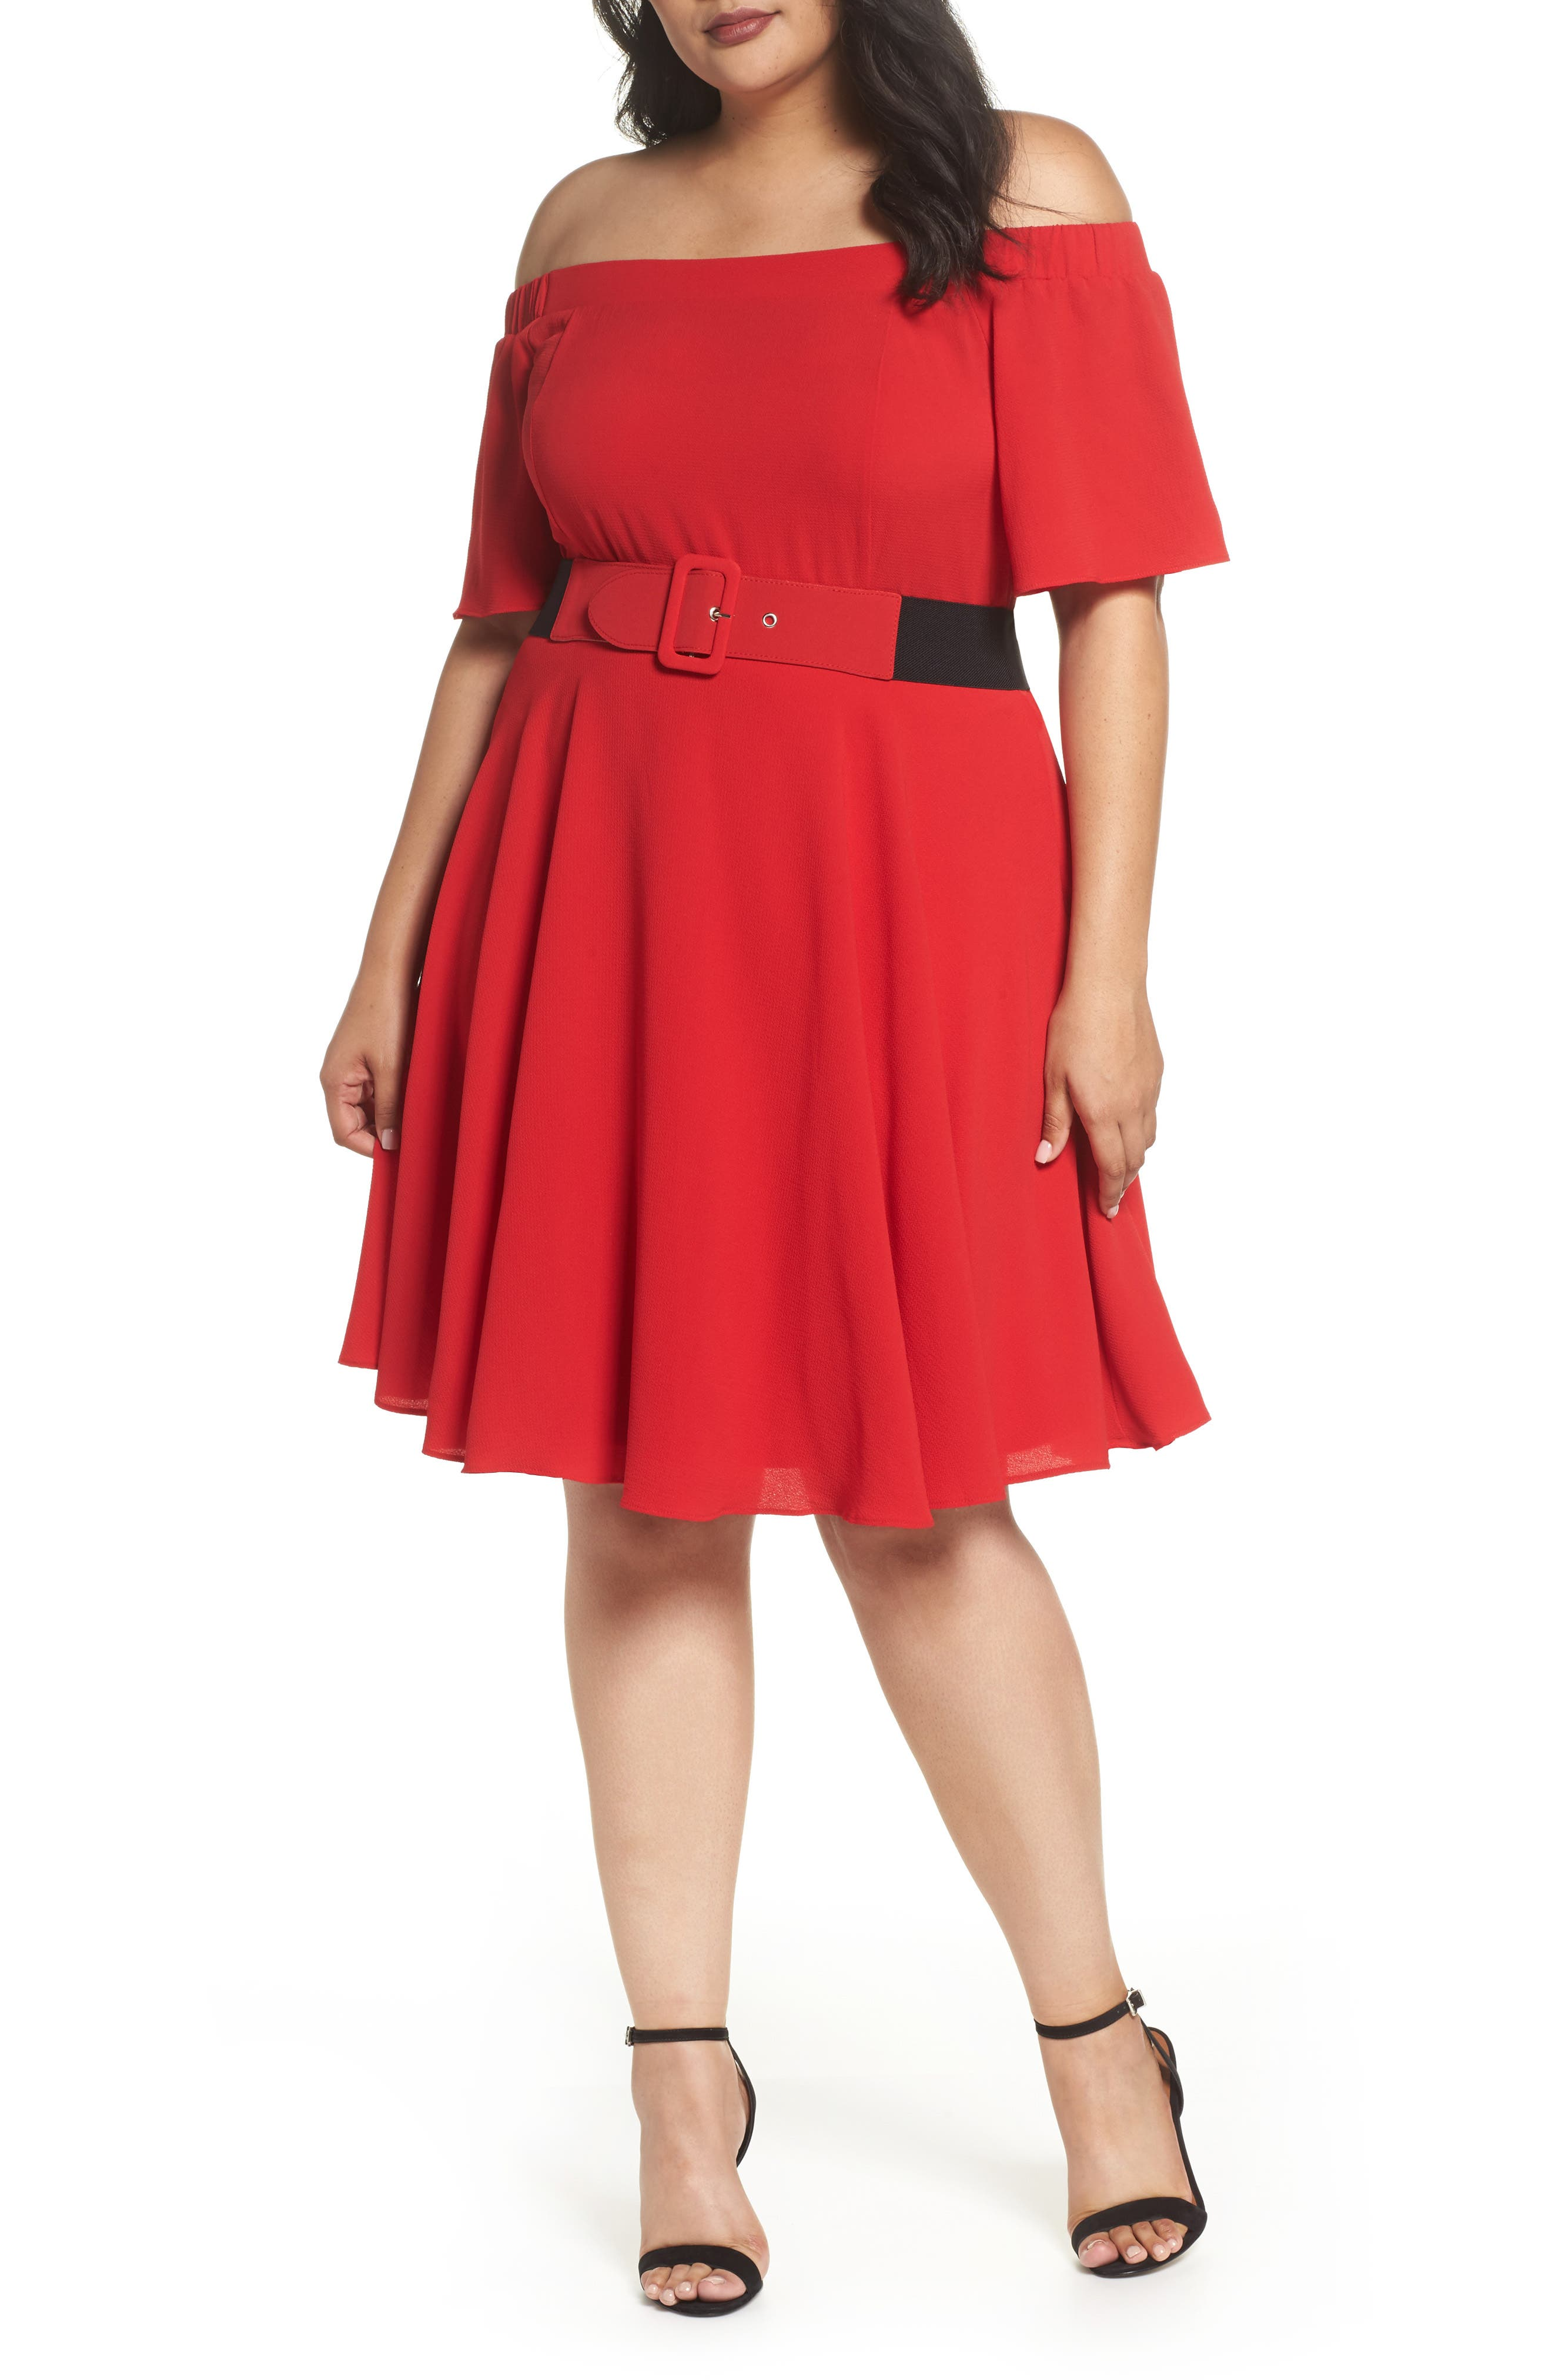 Plus Size City Chic Lady Valerie Fit & Flare Dress, Red